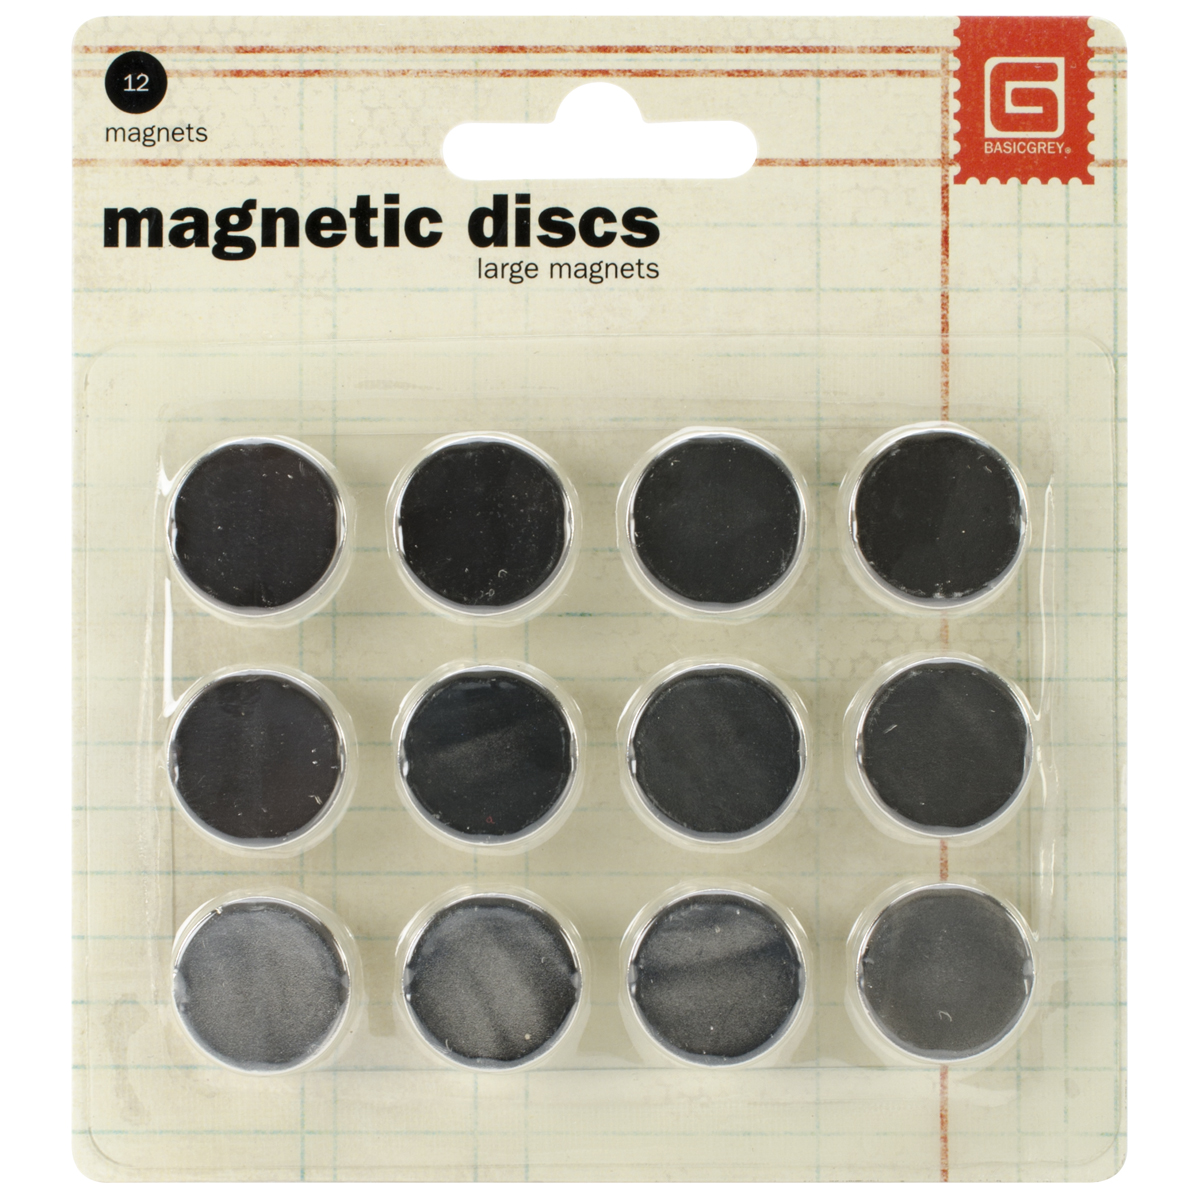 Large Magnets